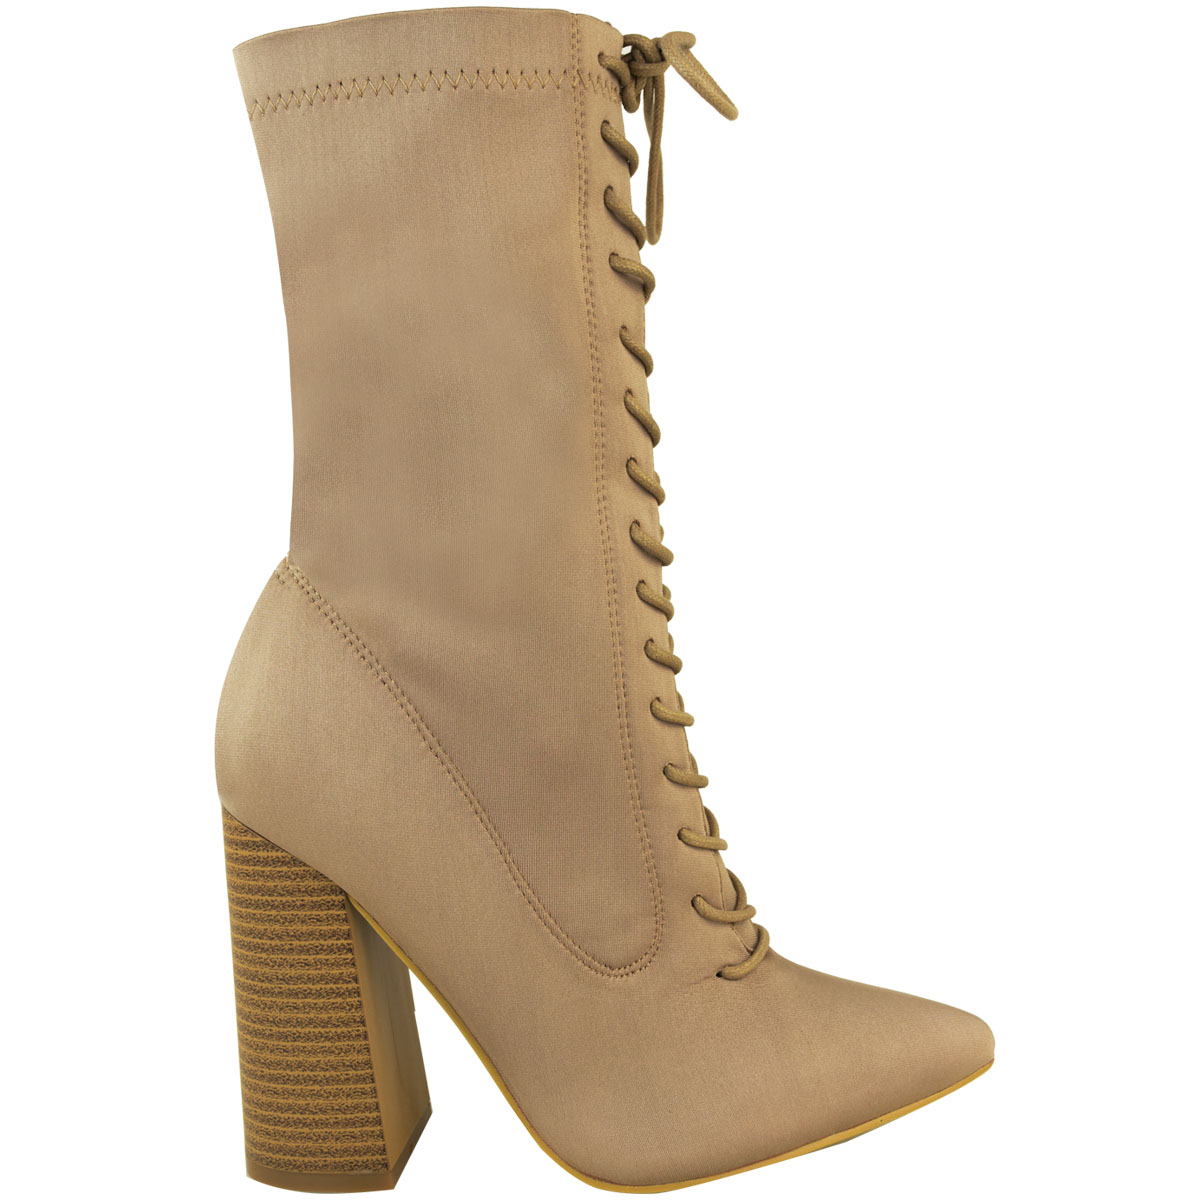 Womens-Ladies-New-Calf-Ankle-Boots-Lycra-Lace-Up-Shoes-Pointed-Toe-Stretch-Size miniatuur 11